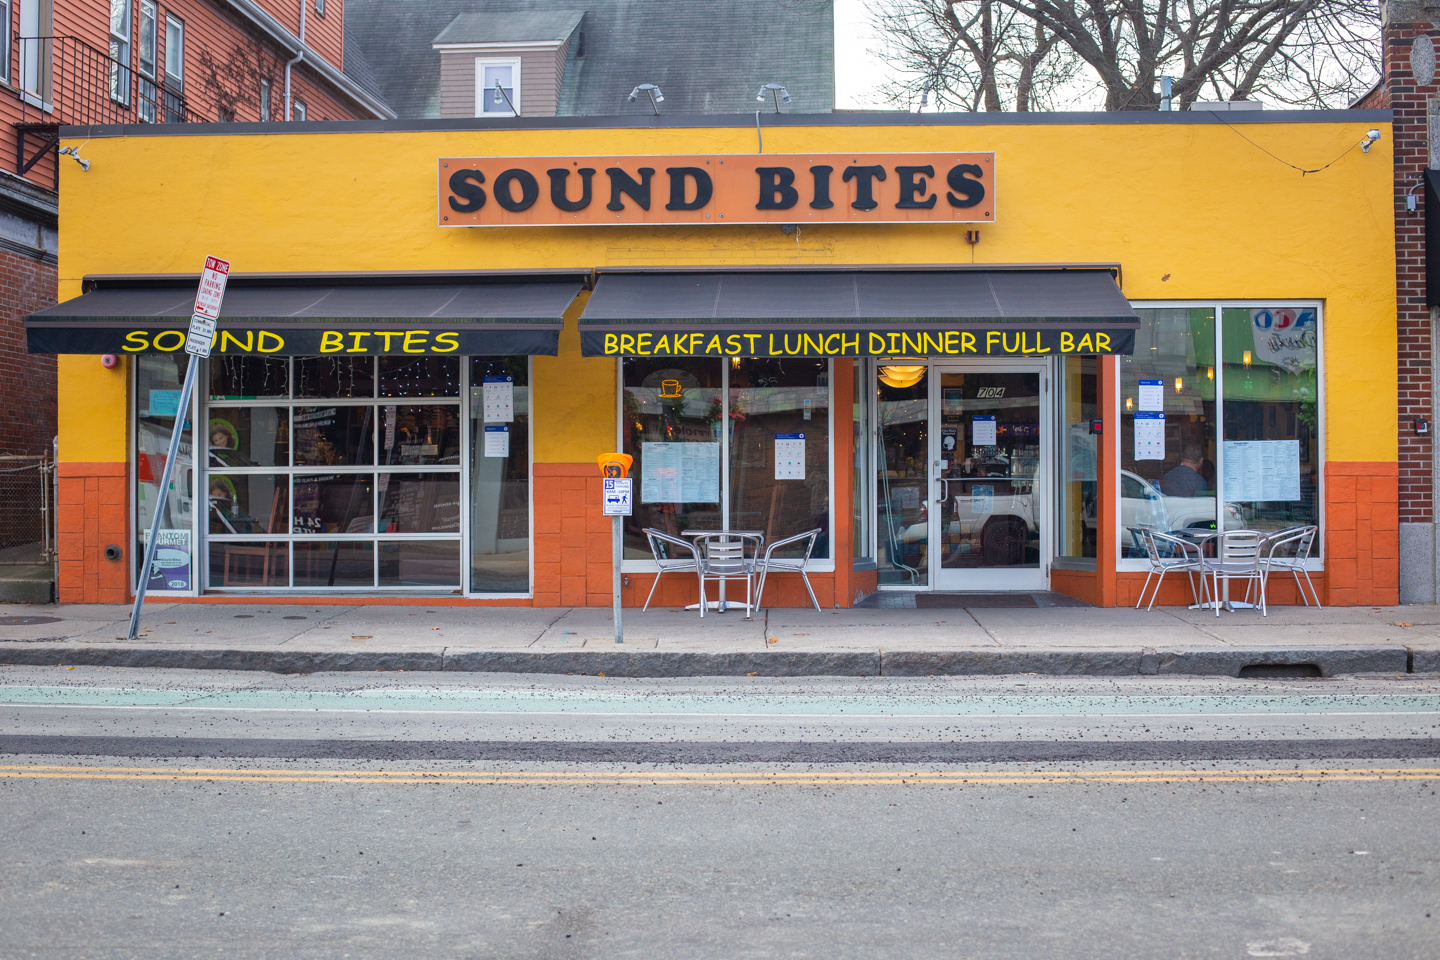 Welcome to Sound Bites